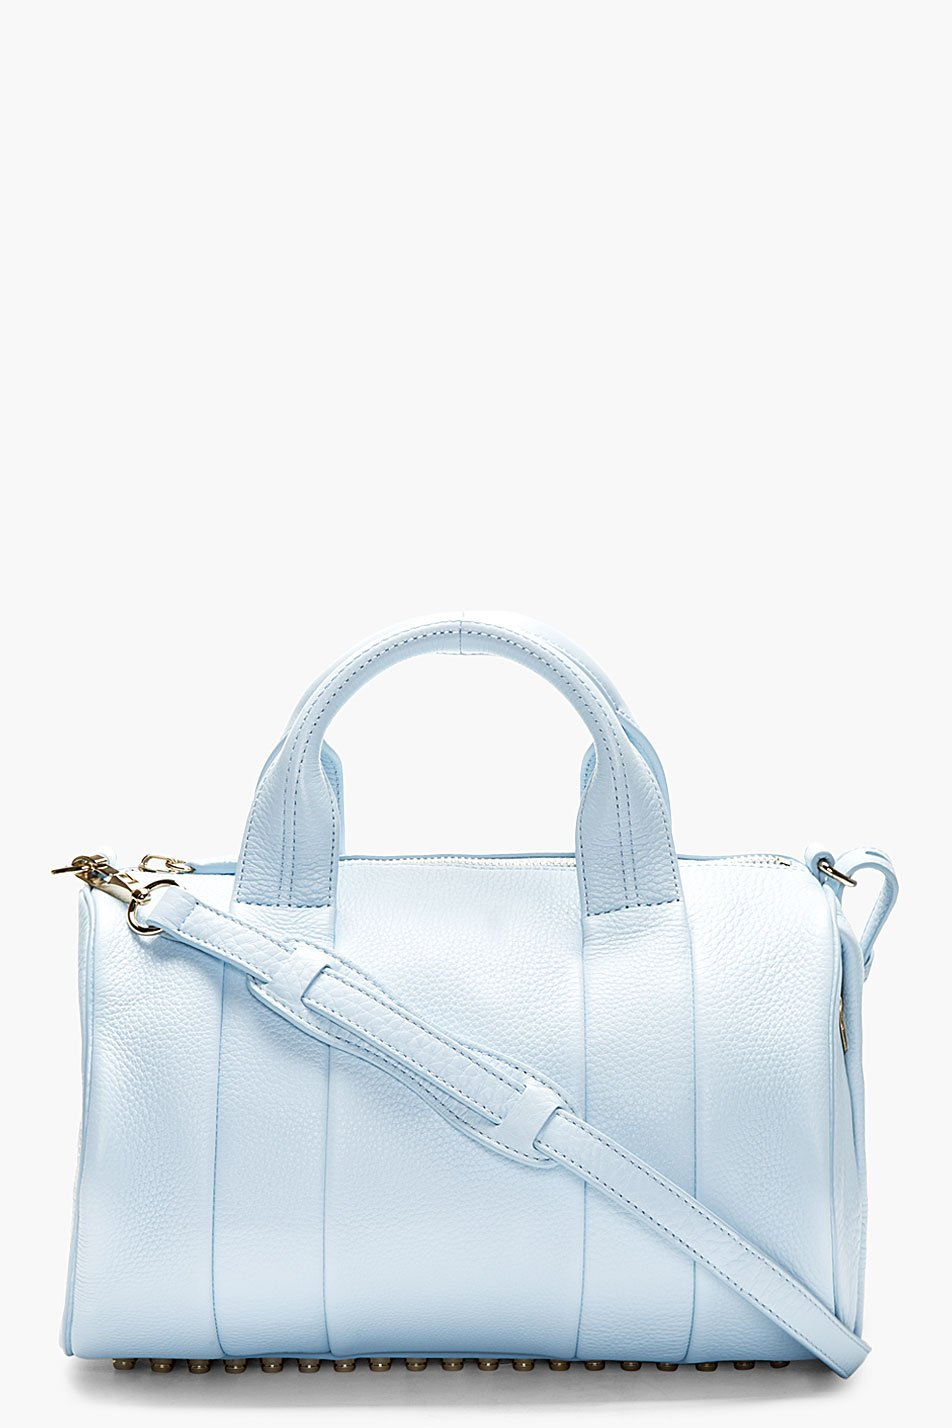 Alexander wang baby blue leather rocco studded duffle bag